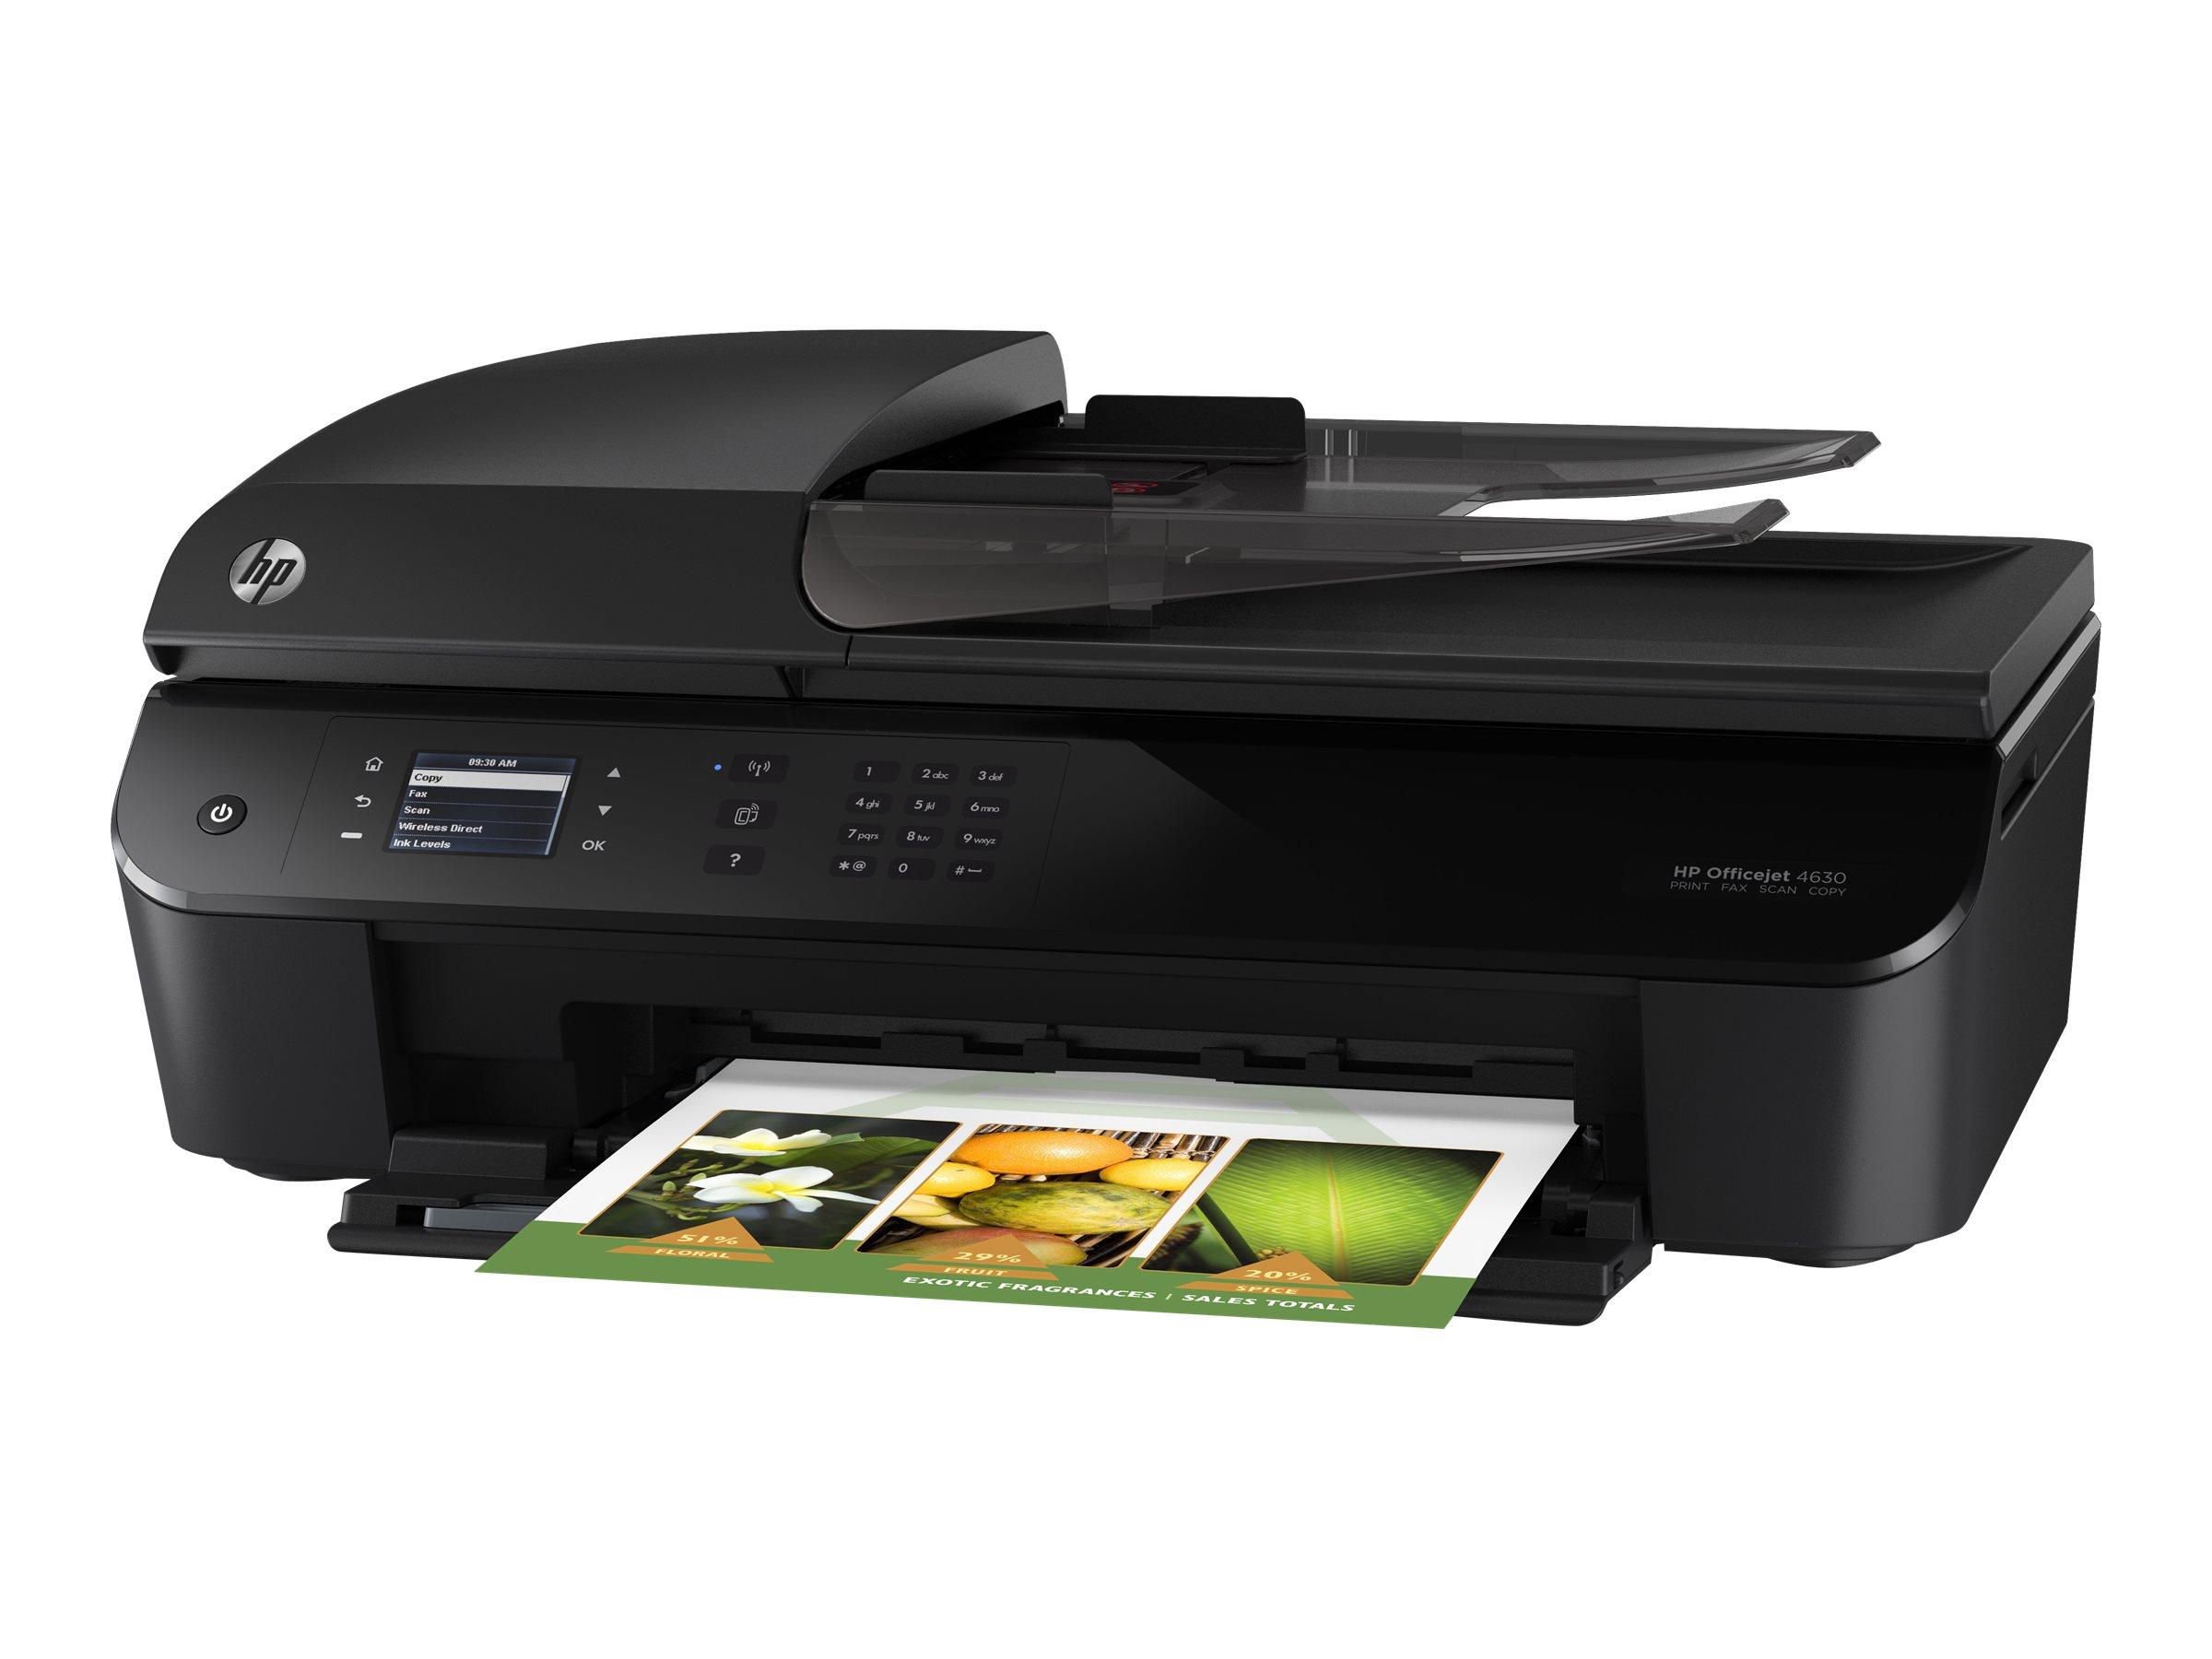 image relating to Hewlett Packard Printable Cards named Hewlett Packard Hp Officejet 4632 E-all-inside-a person Printer